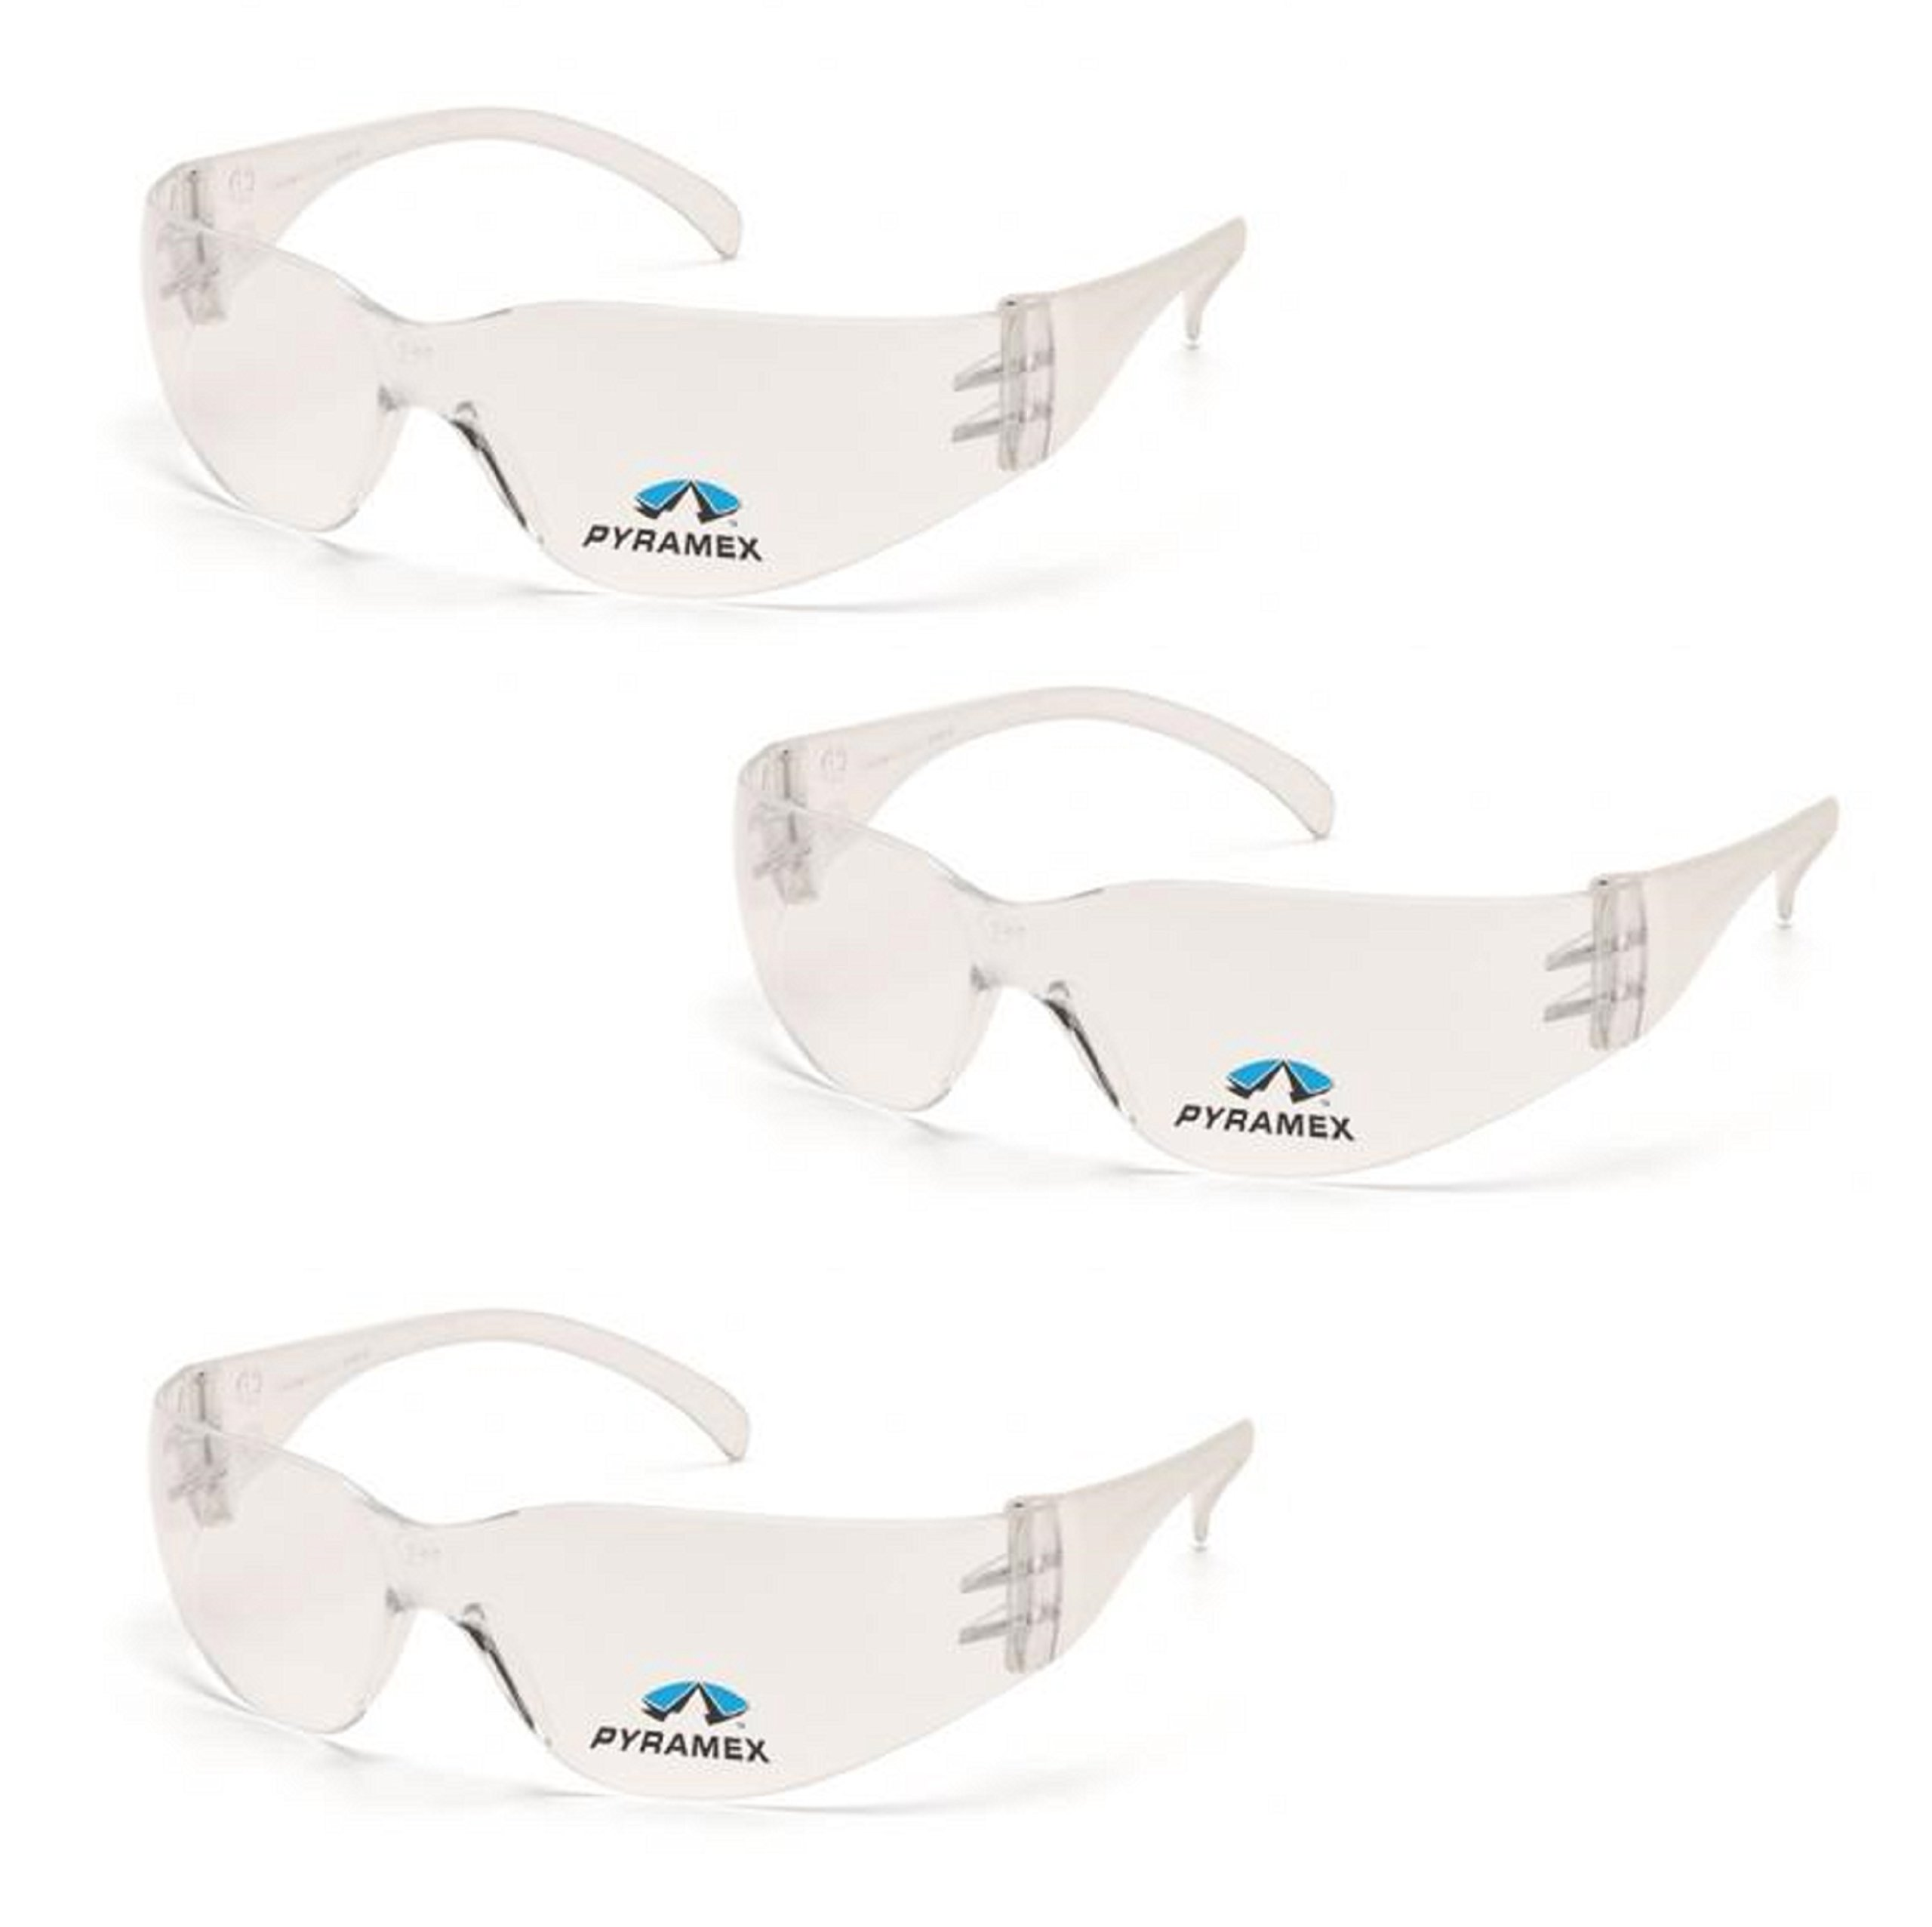 Pyramex Safety Intruder Reader Bifocals Clear Frame with Clear Lens (3 Pair) (Clear + 1.5 Lens)